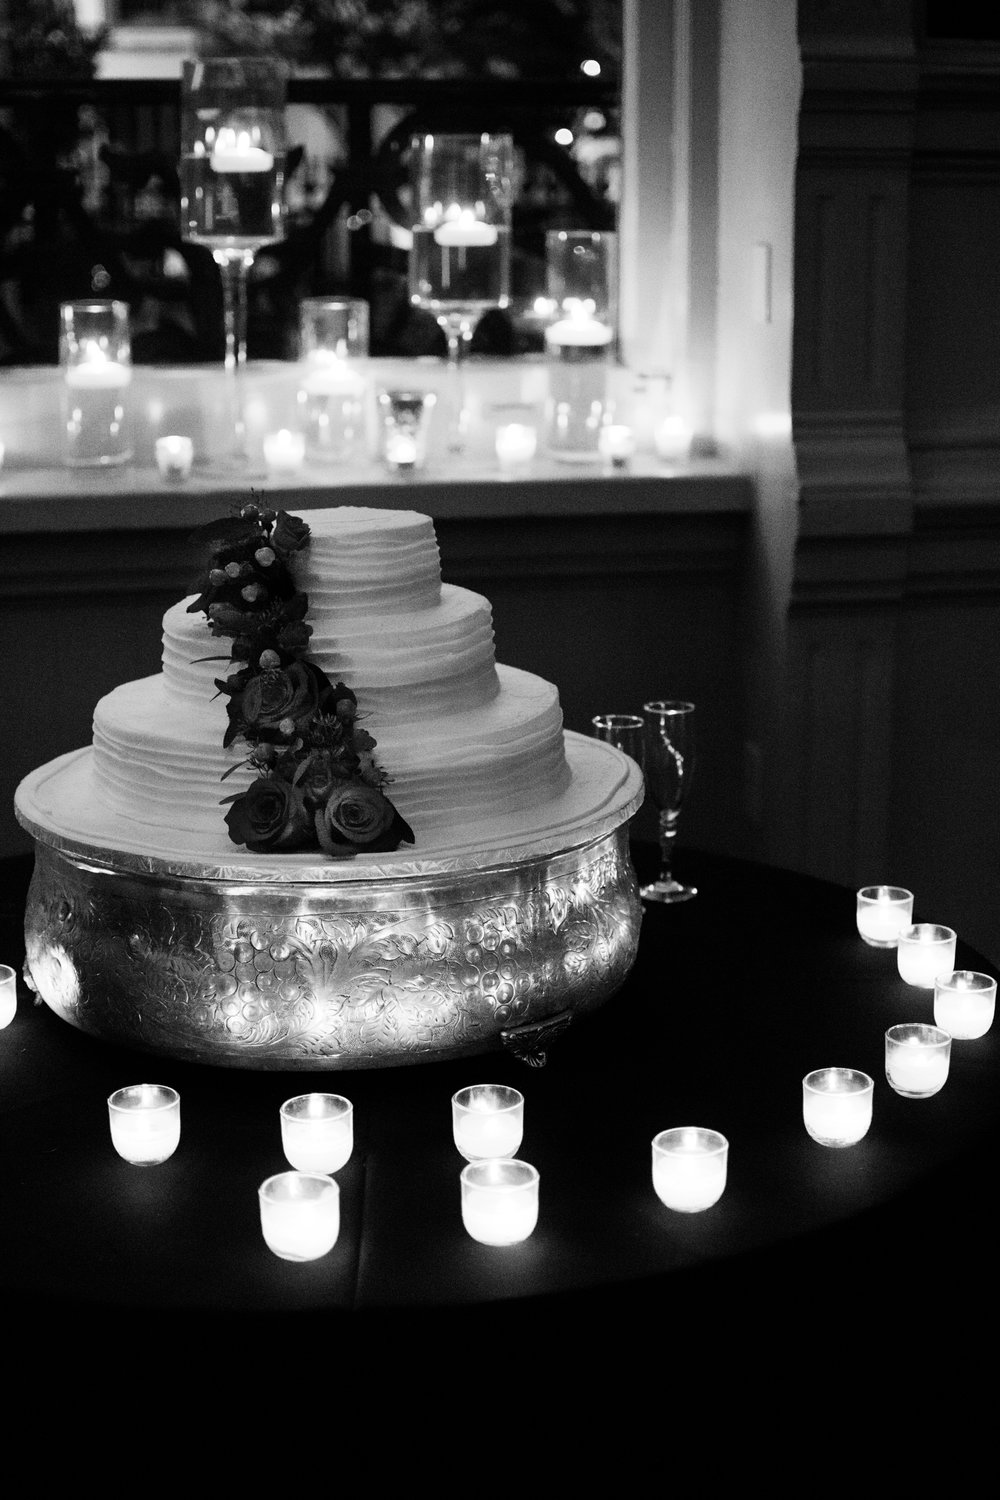 NewOrleansWedding (37 of 48).jpg